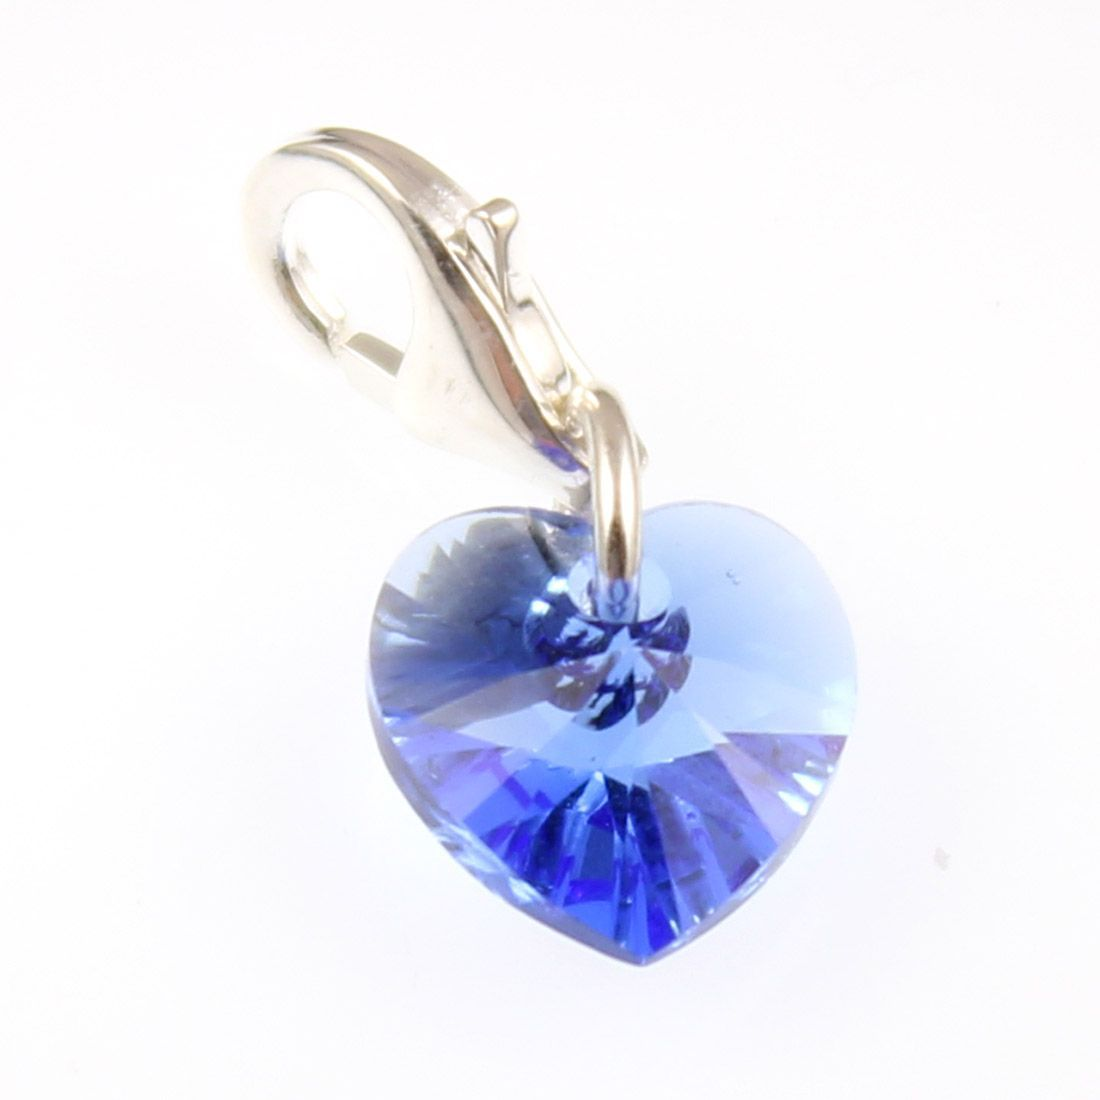 757e8ae02 Sterling Silver Sapphire Crystal Heart Clip on Charm Made with Swarovski  Elements- With 11mm Clasp .